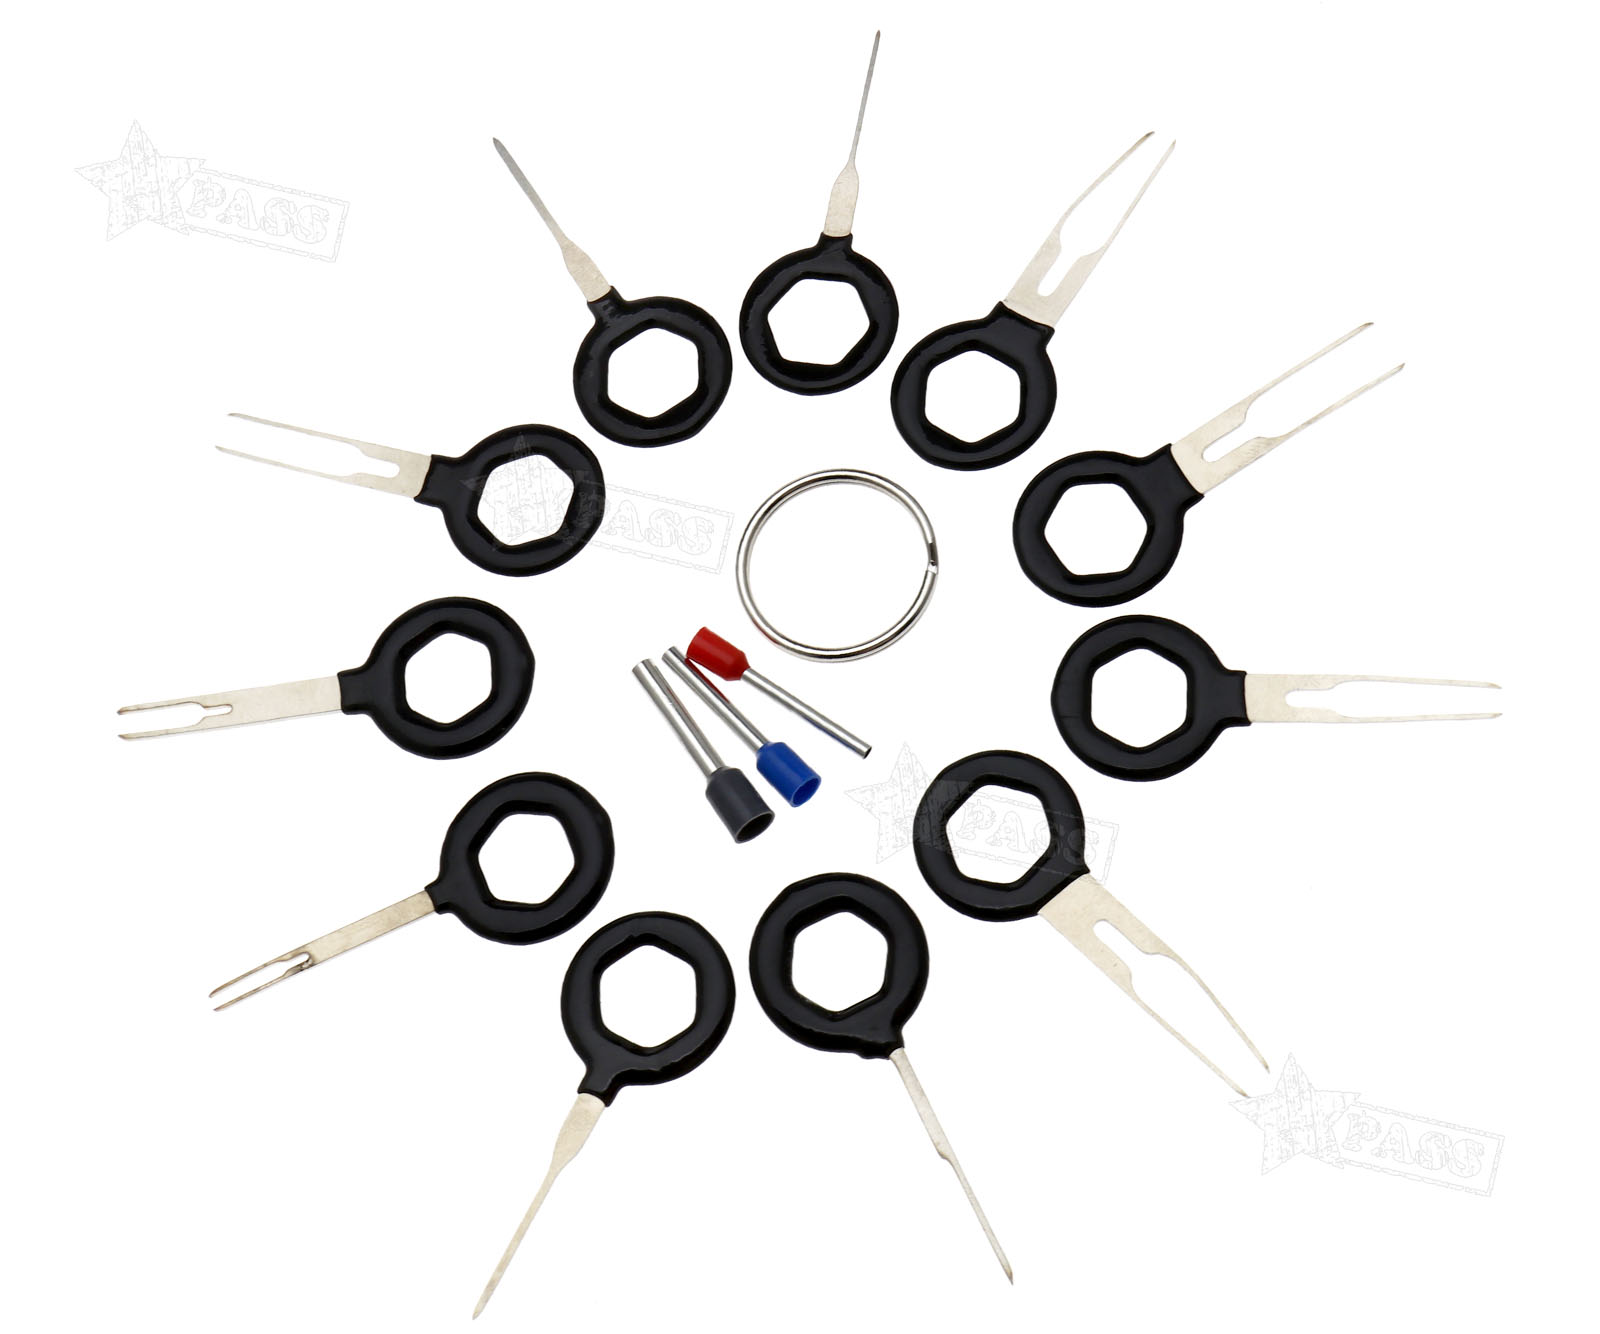 11pcs Connector Pin Extractor Kit Electrical Wire Car Auto